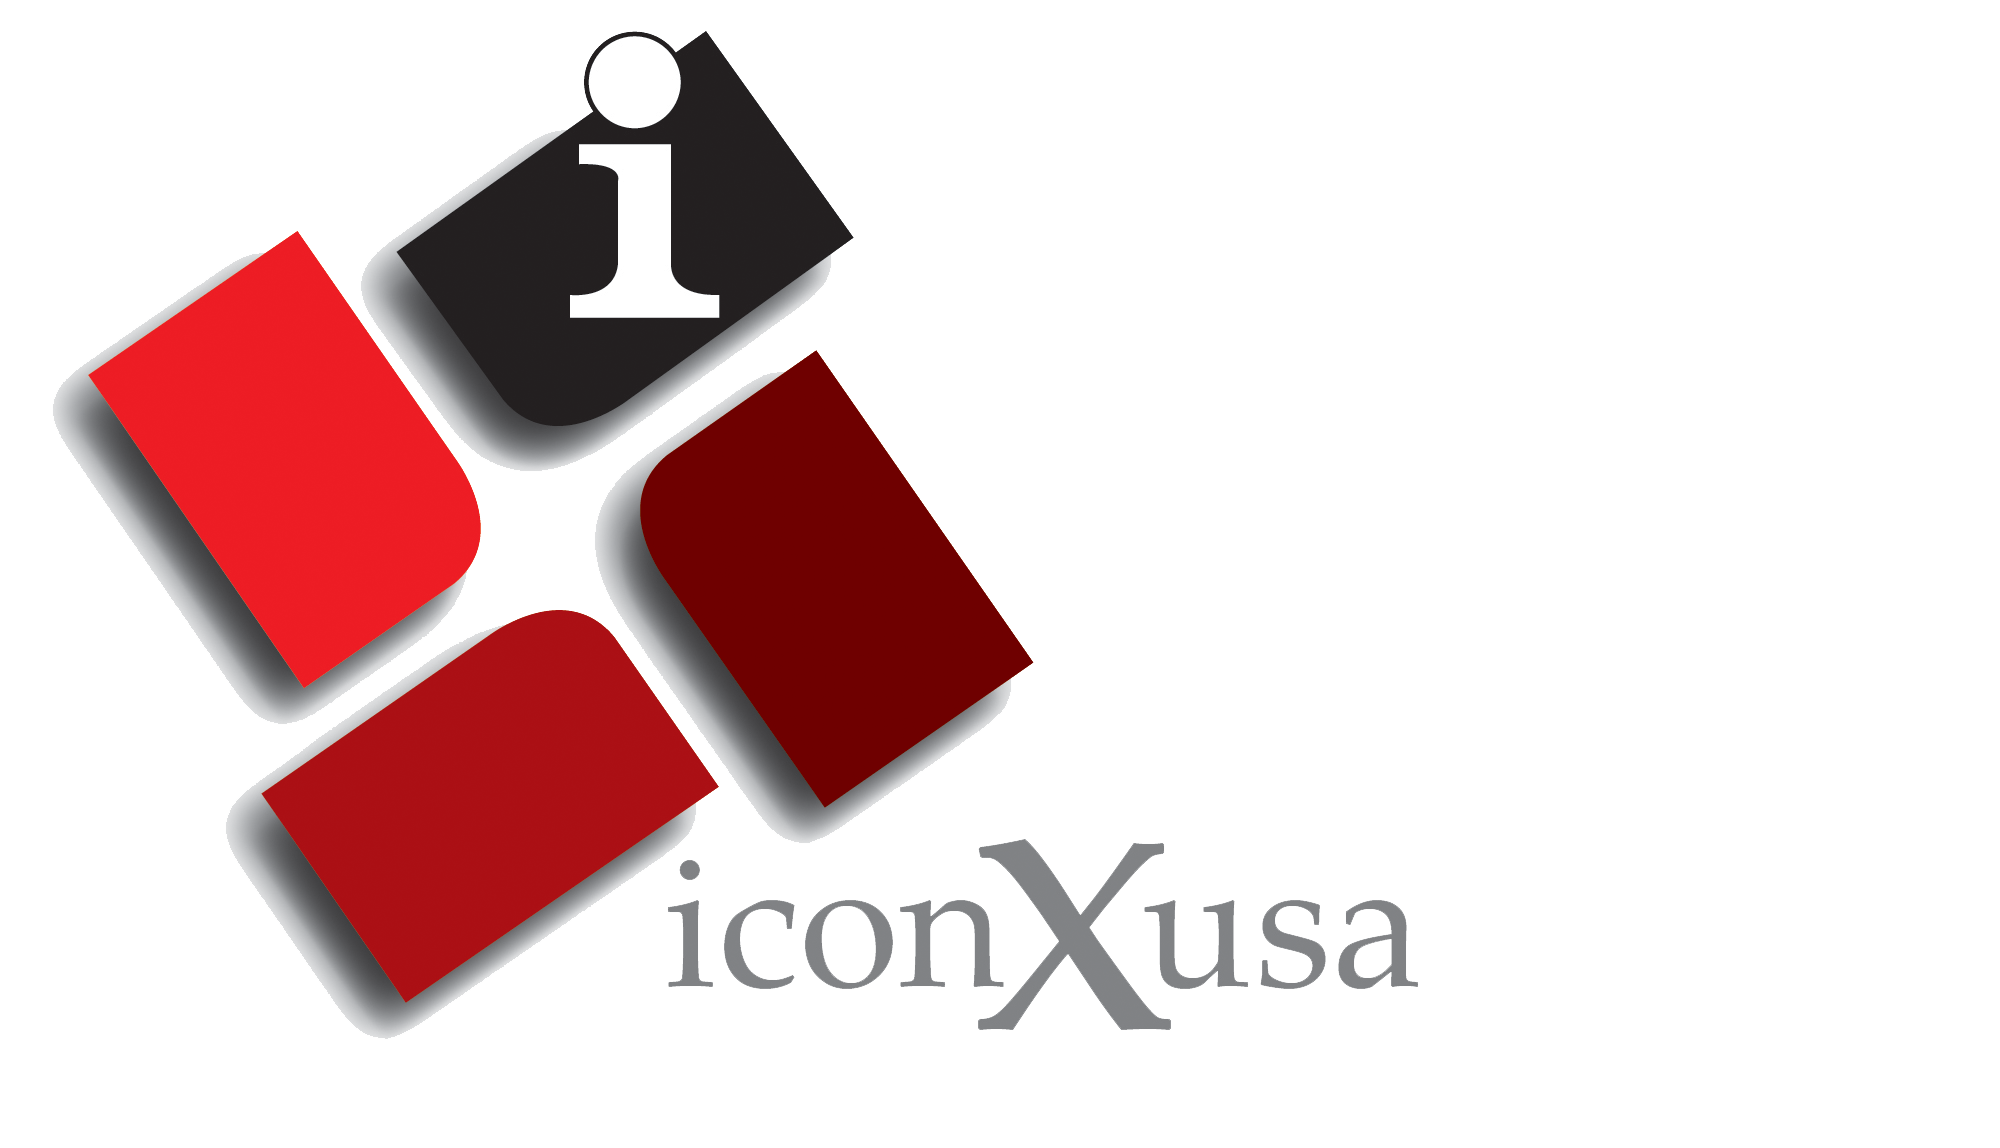 IconX, LLC